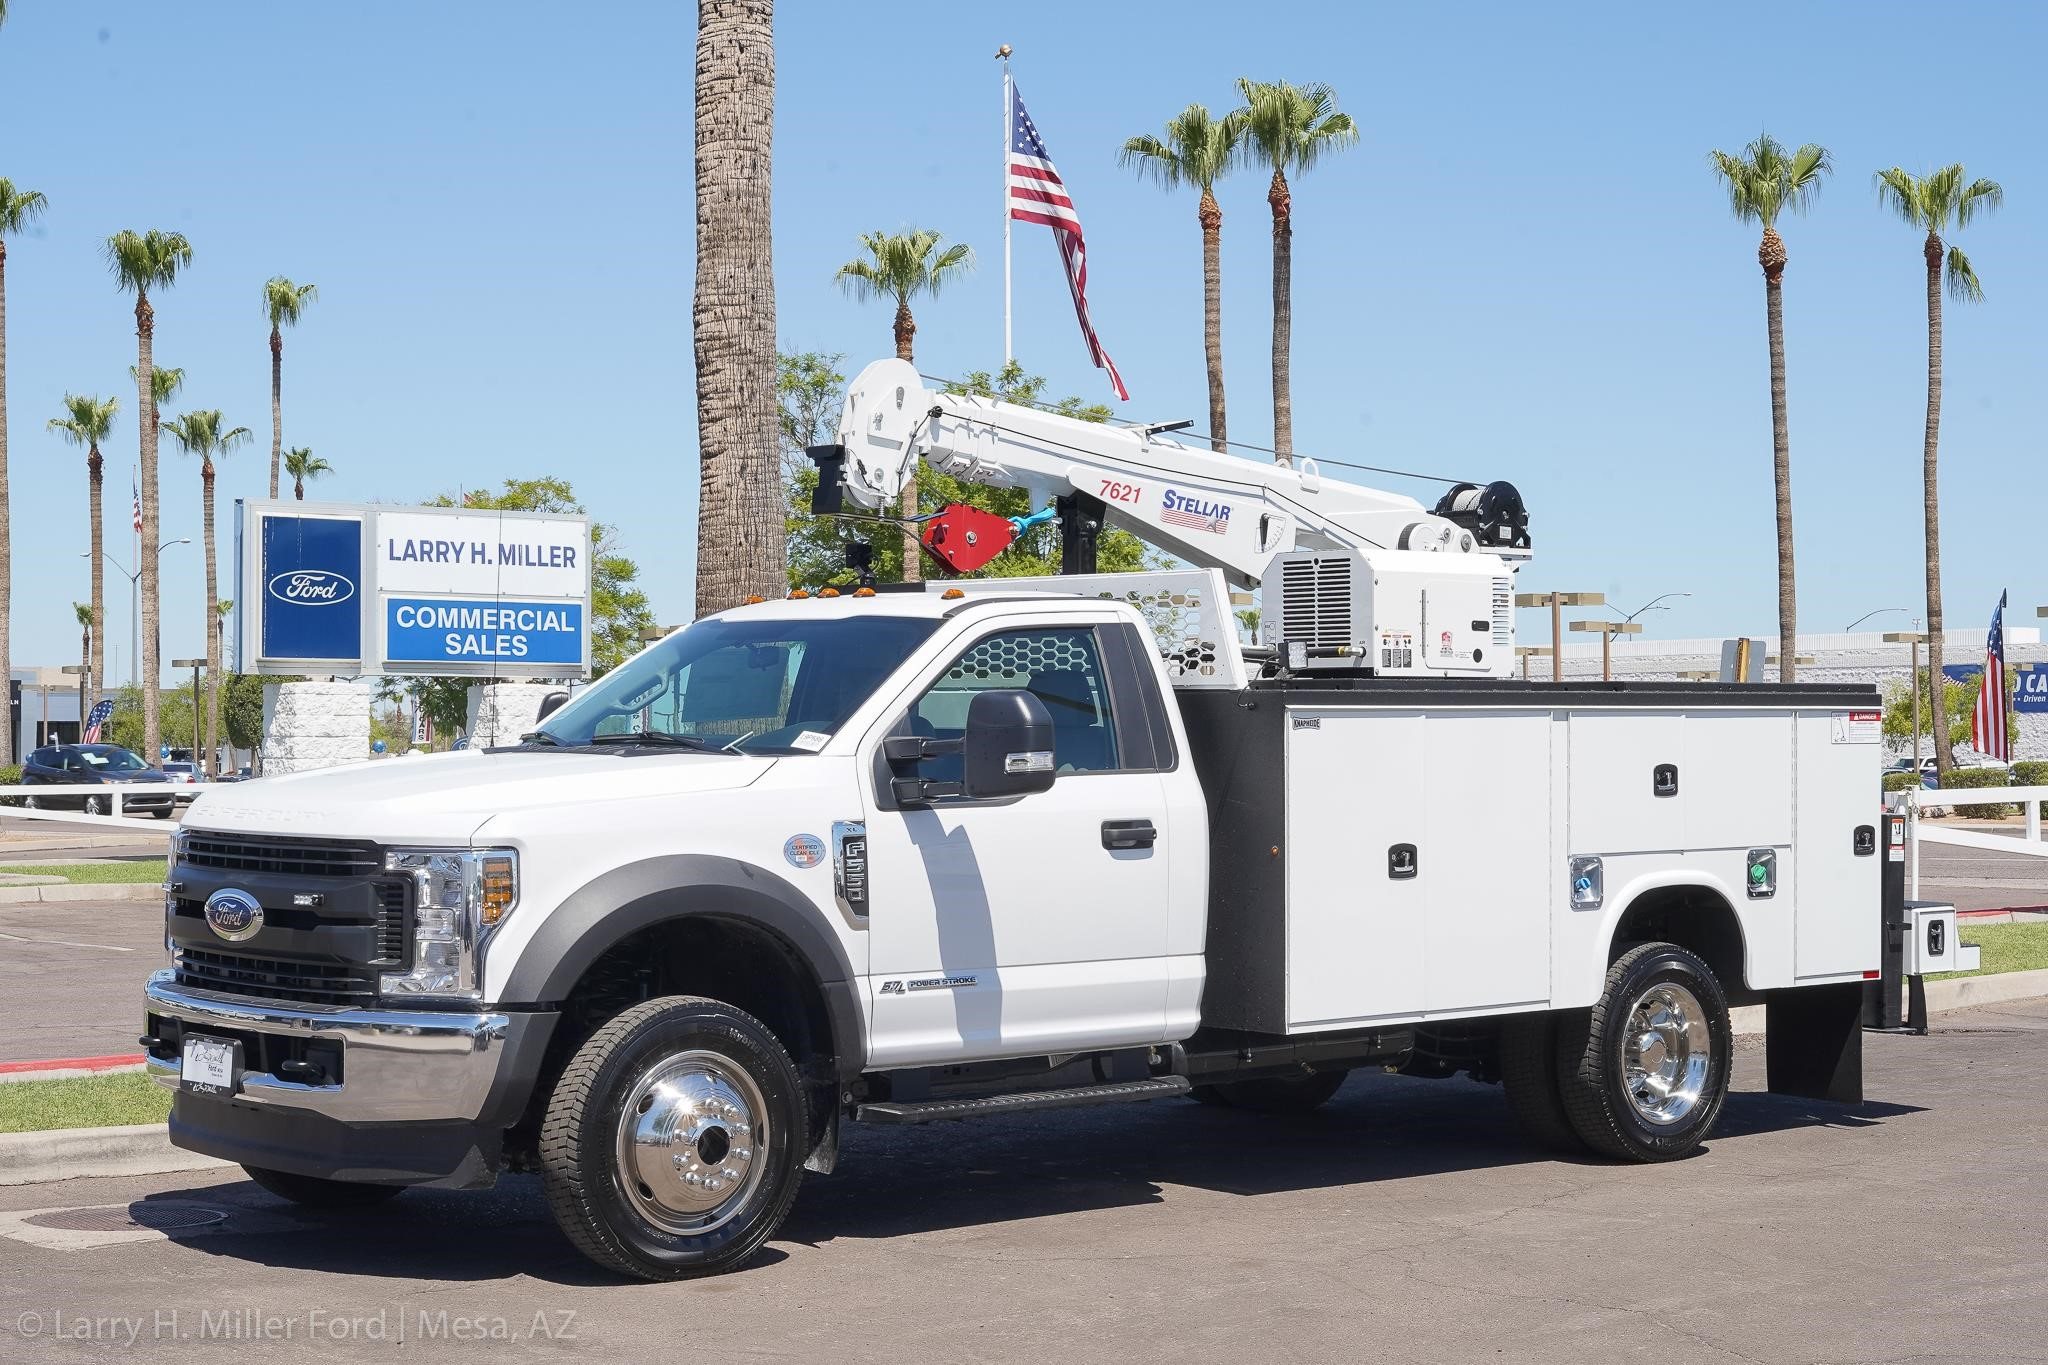 Ford F550 For Sale >> 2019 Stellar 7621 Mounted On 2019 Ford F550 For Sale In Mesa Arizona